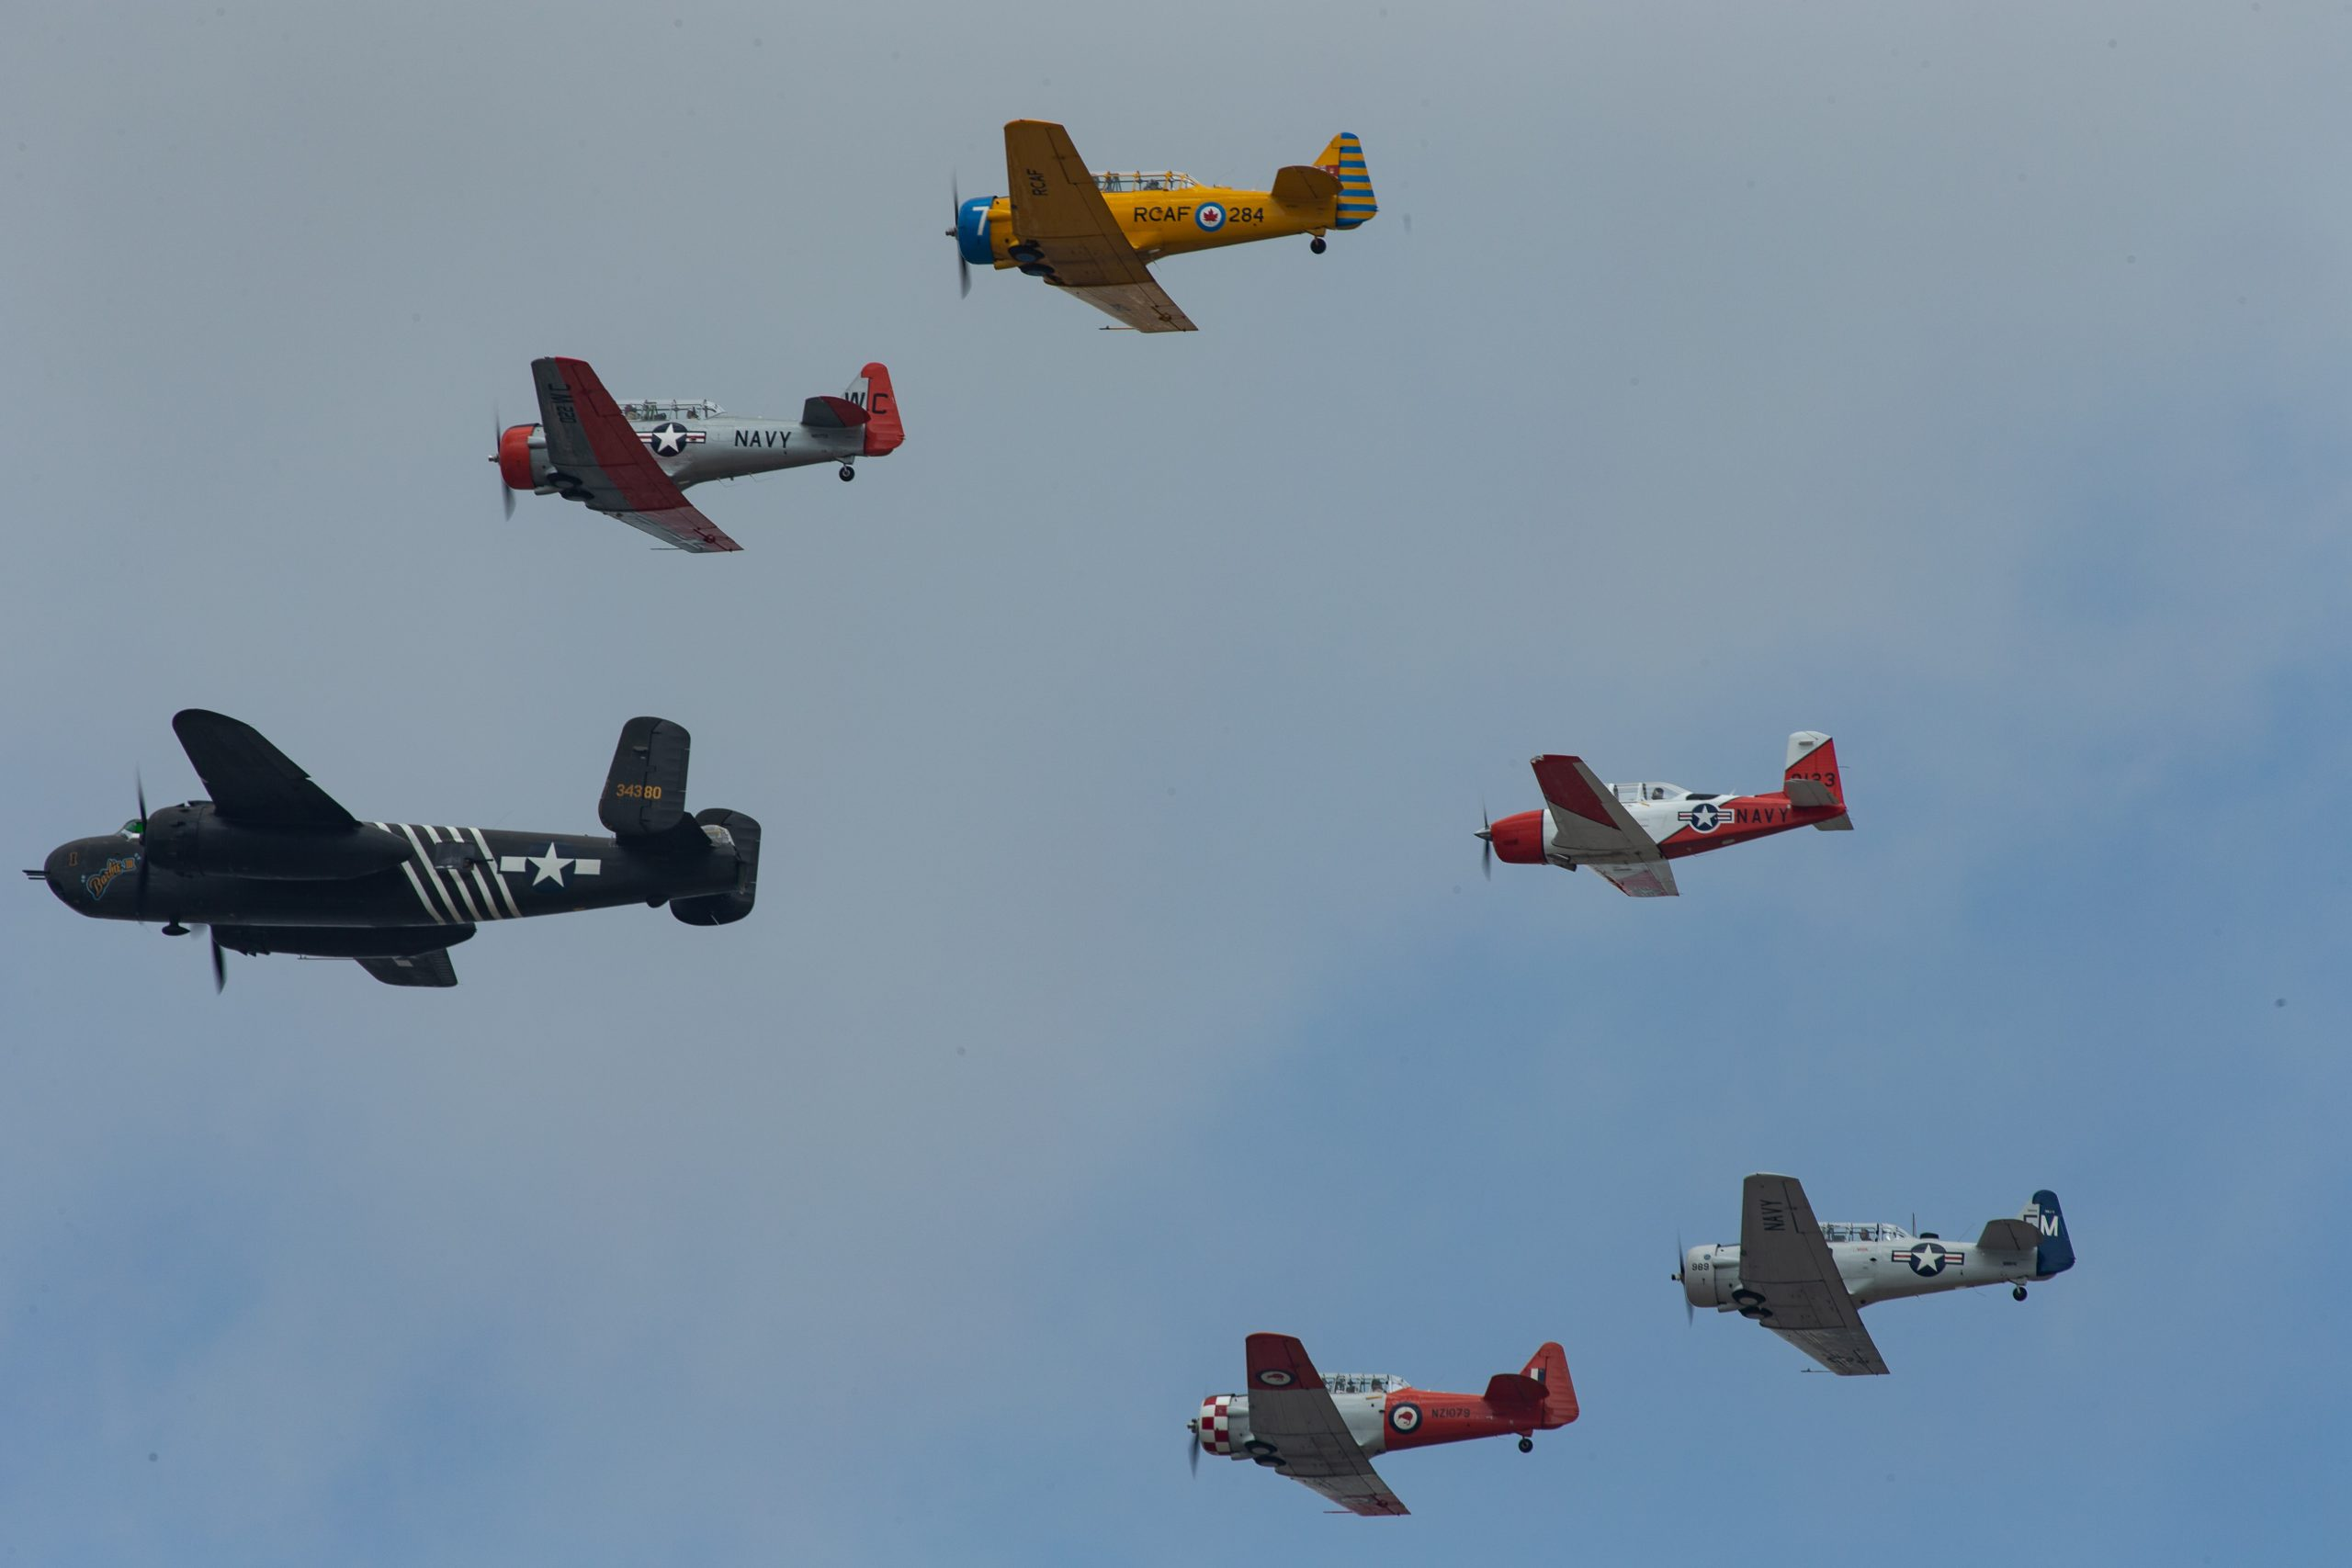 Addison's 'Salute to Heroes' Takes to Plano's Skies with Rare, Vintage Aircraft